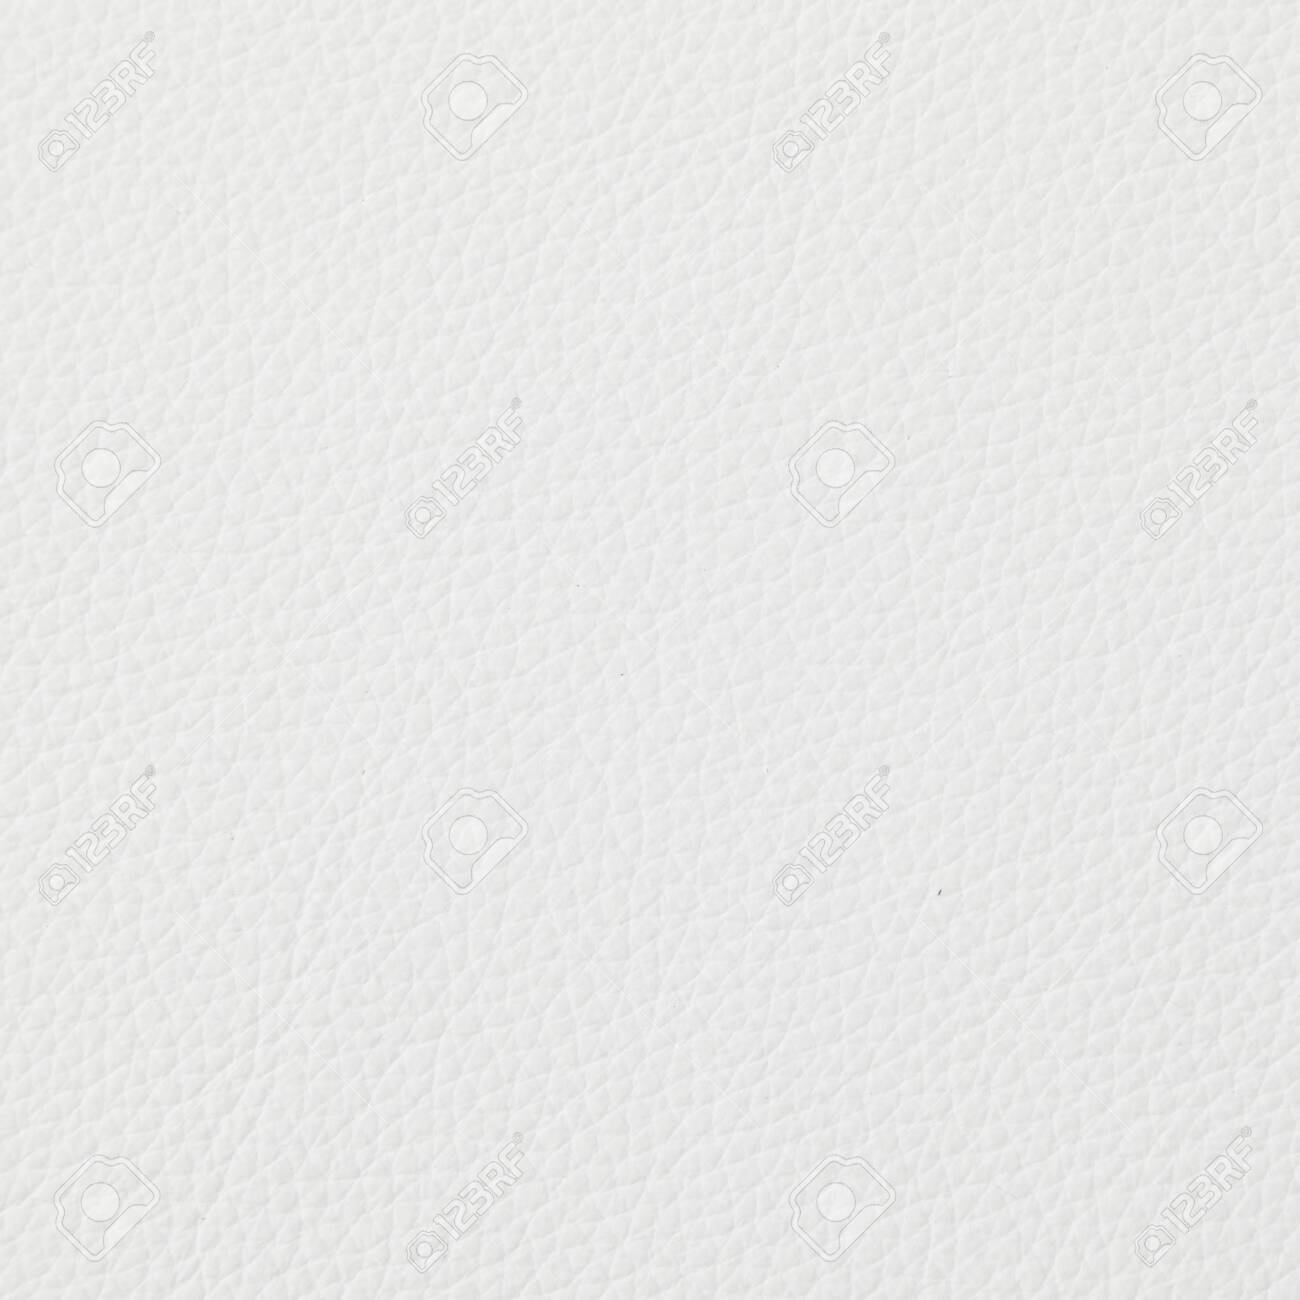 Closeup of light color leather material texture background - 124972134